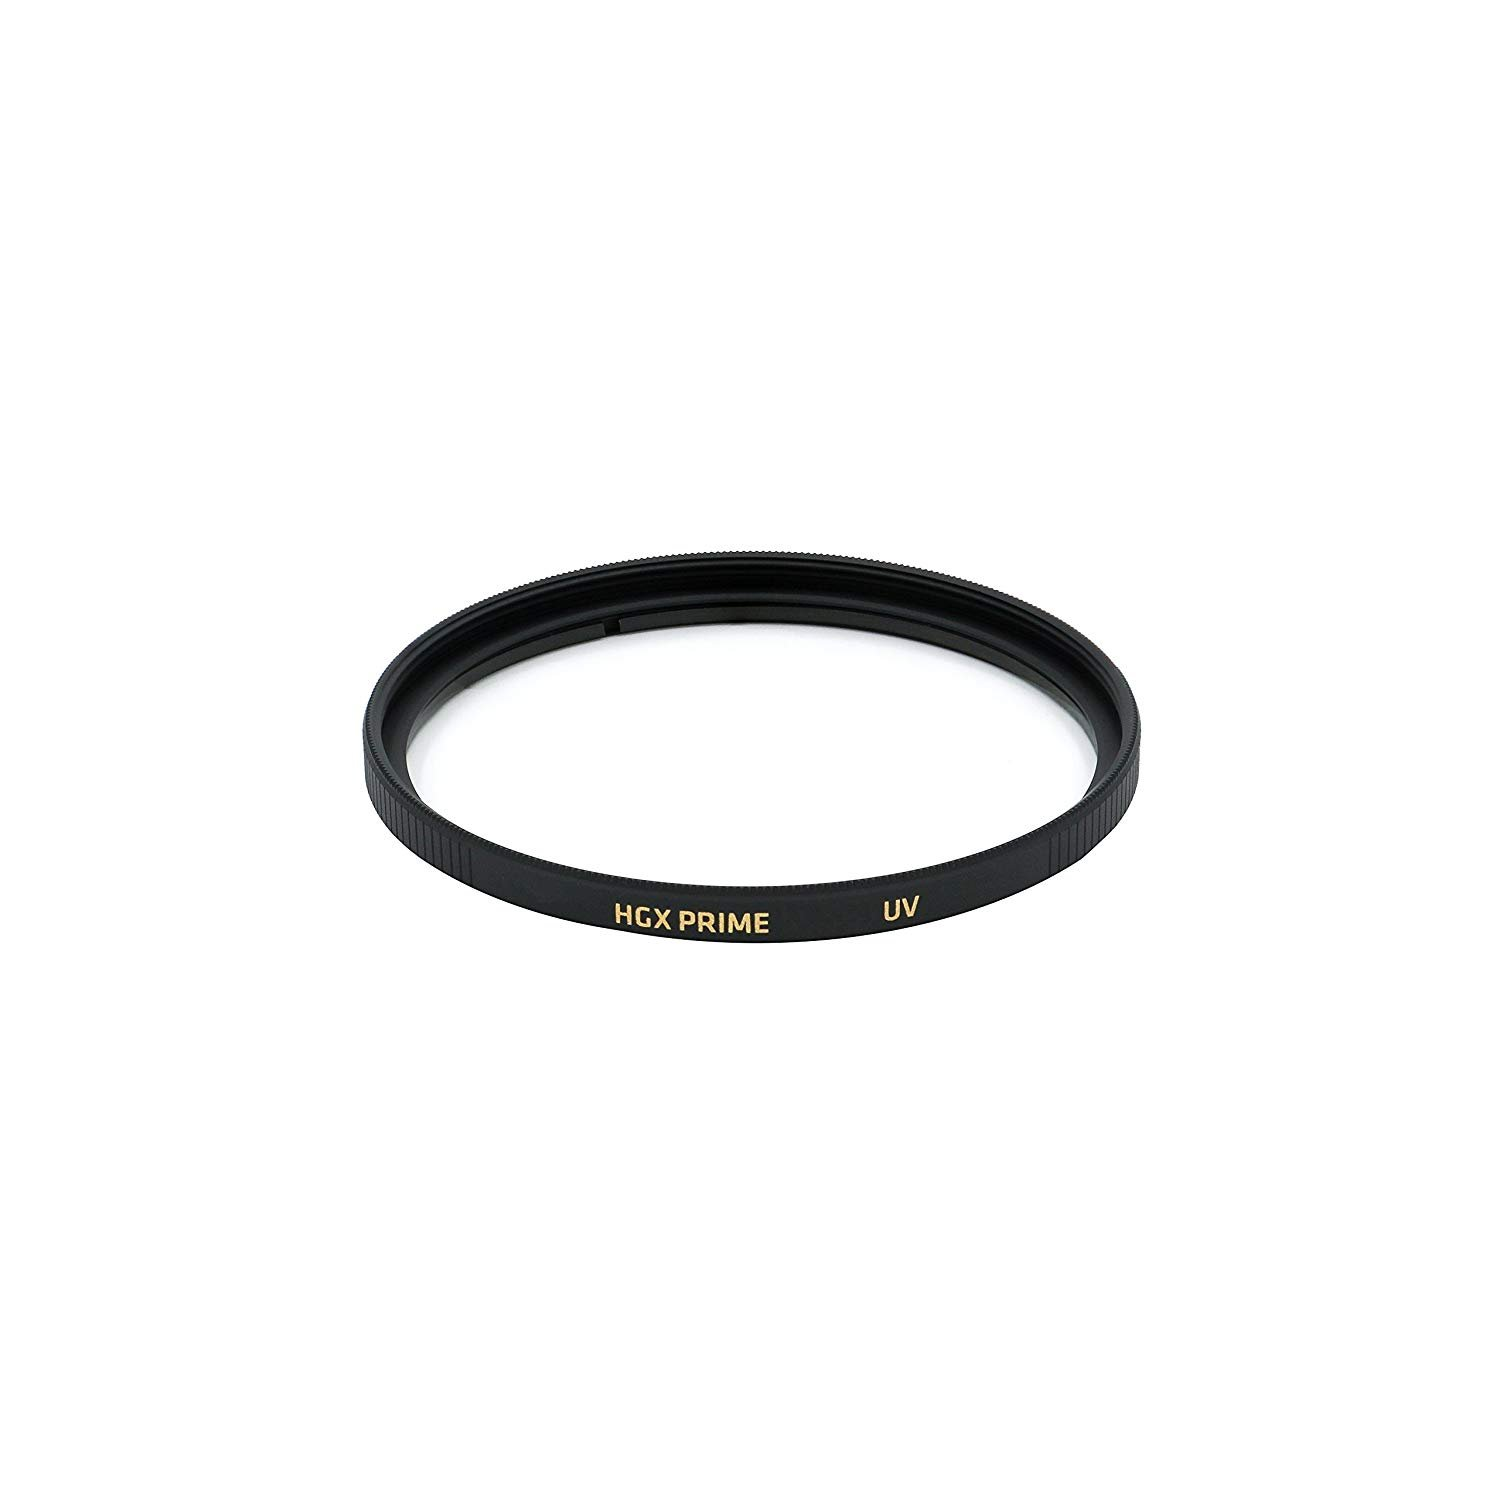 Promaster HGX Prime Ultraviolet (UV) Filter - 95mm by ProMaster